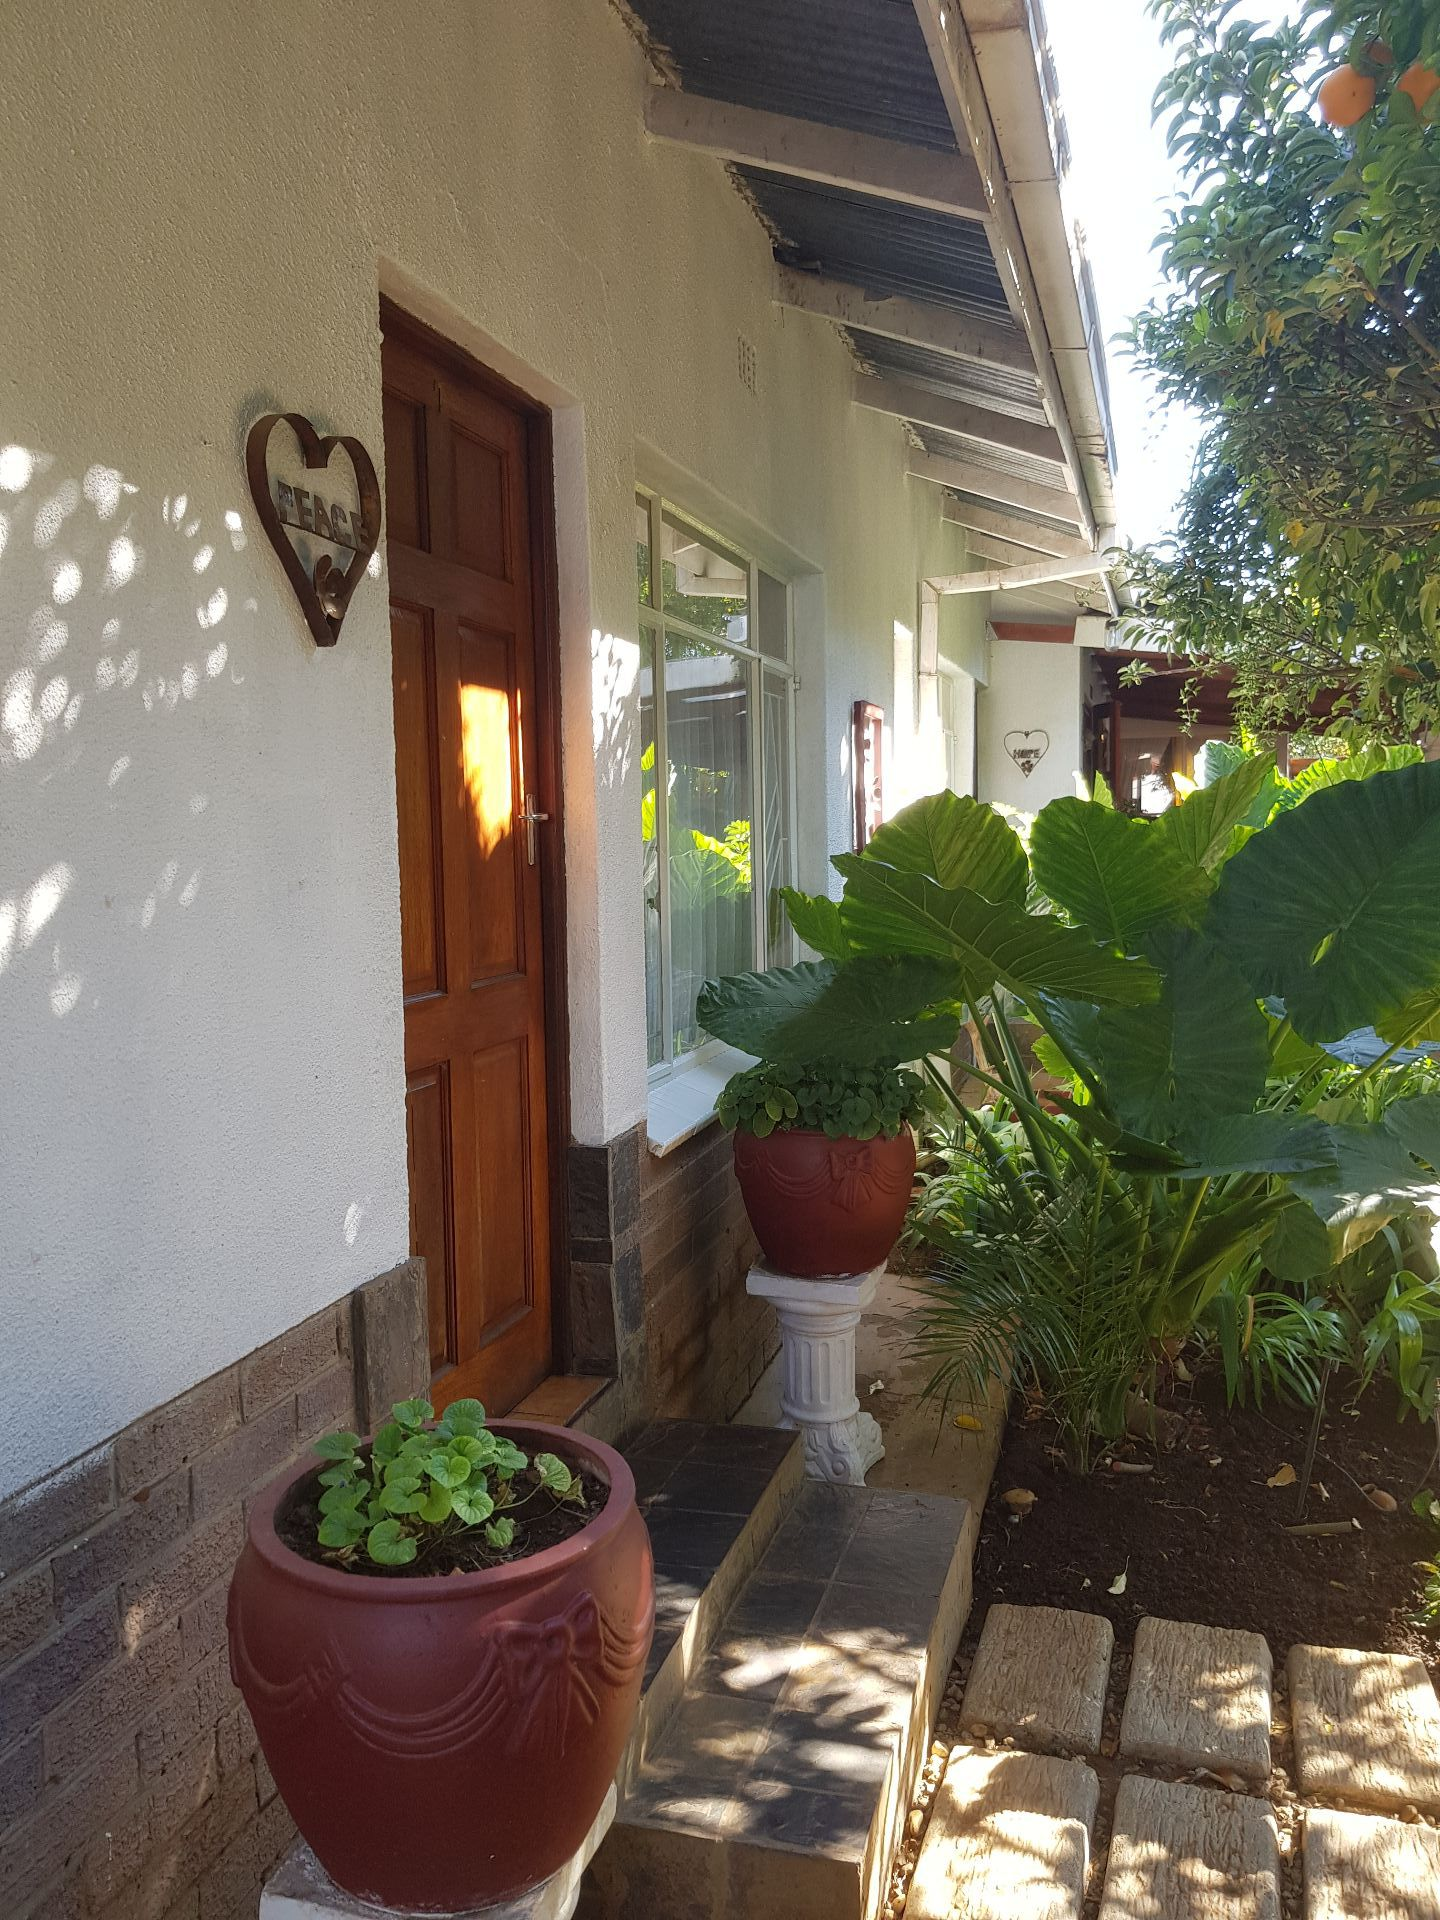 Potchefstroom Central property for sale. Ref No: 13623699. Picture no 7